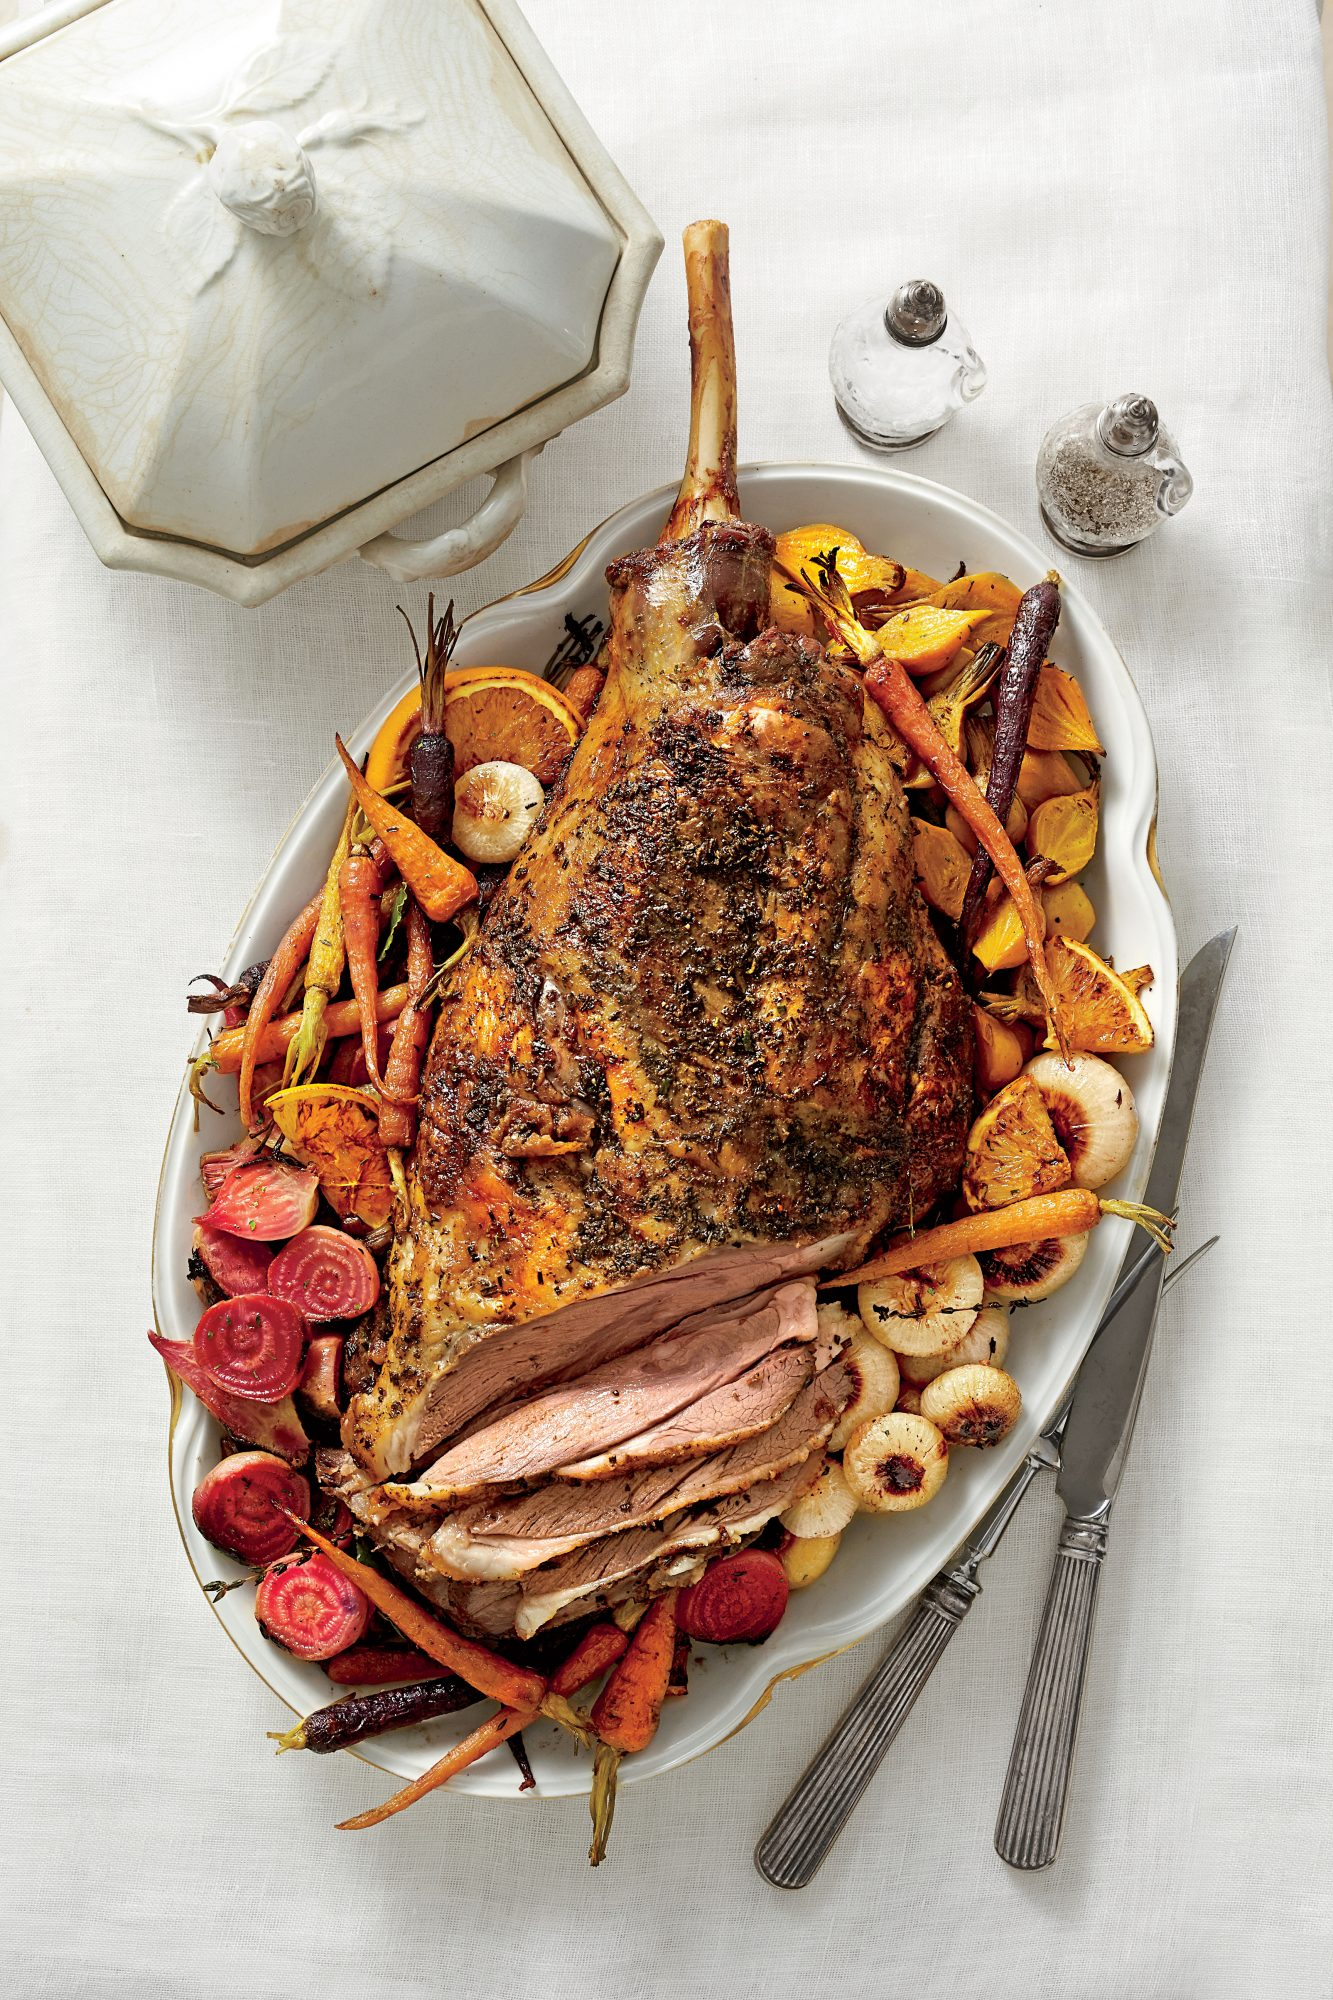 Roasted Leg of Lamb with Lemon-Herb Salt